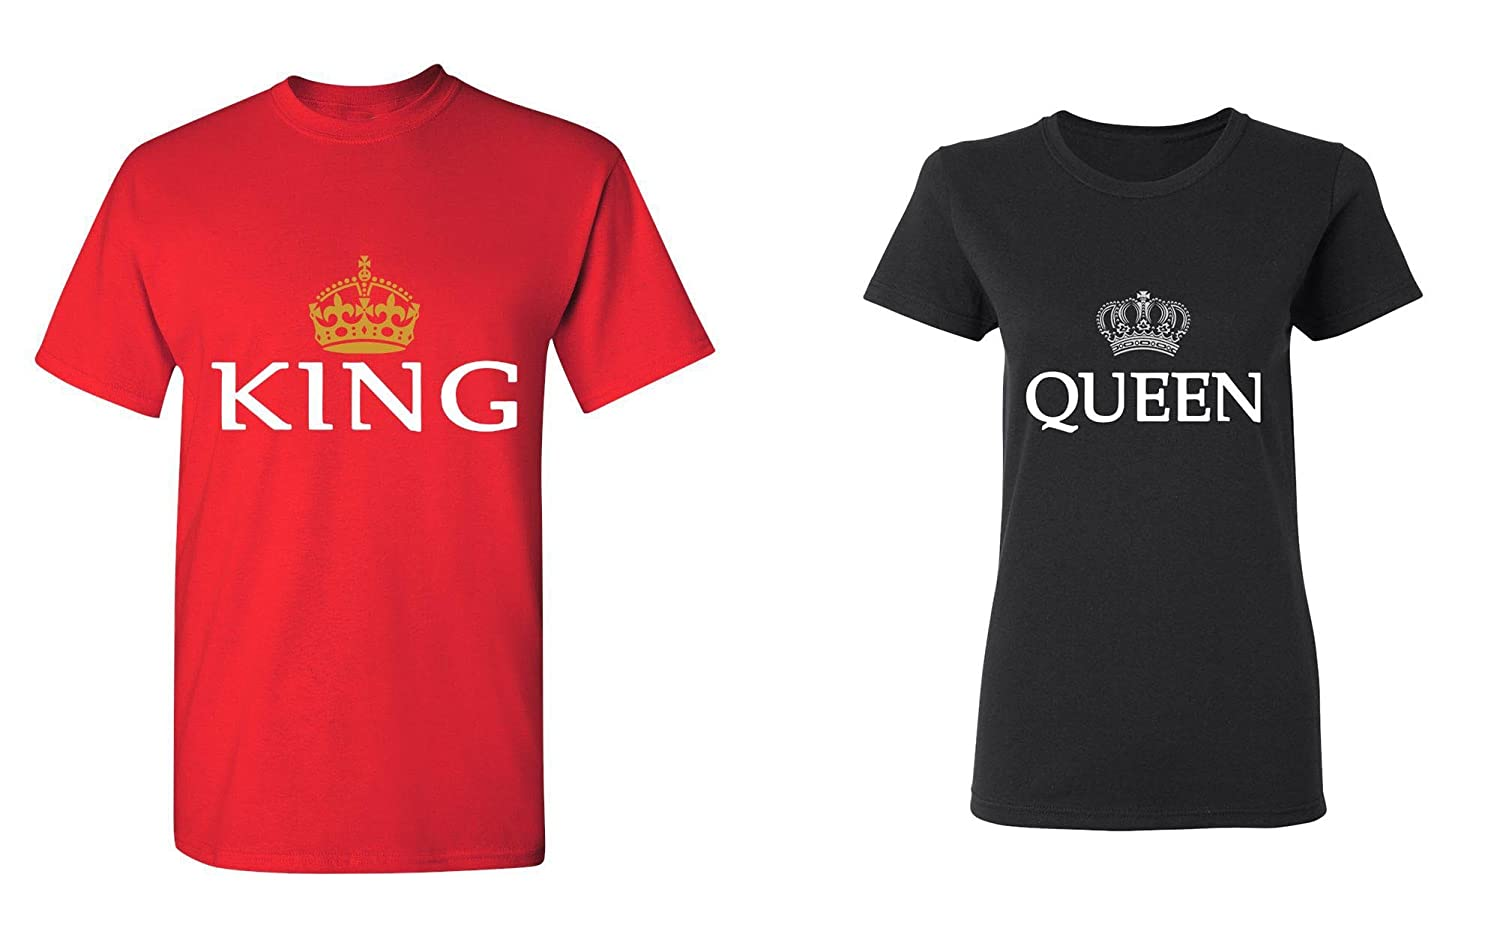 ceb0febb Amazon.com: King & Queen - Matching Couple Shirts - His and Her T-Shirts -  Love Tees: Clothing